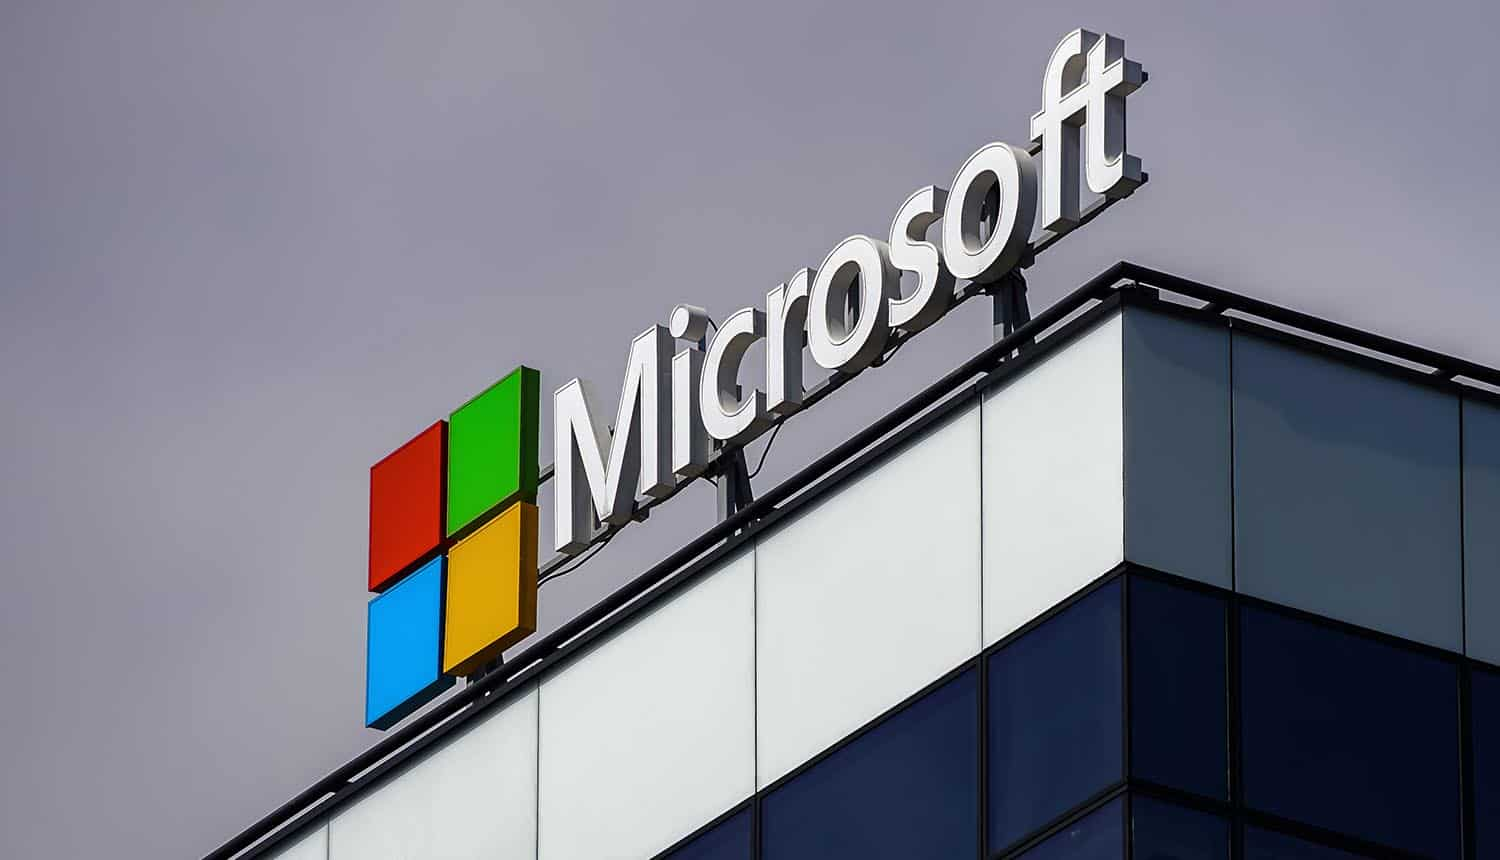 Microsoft logo above its headquarters showing leaked credentials by Microsoft Exchange protocol